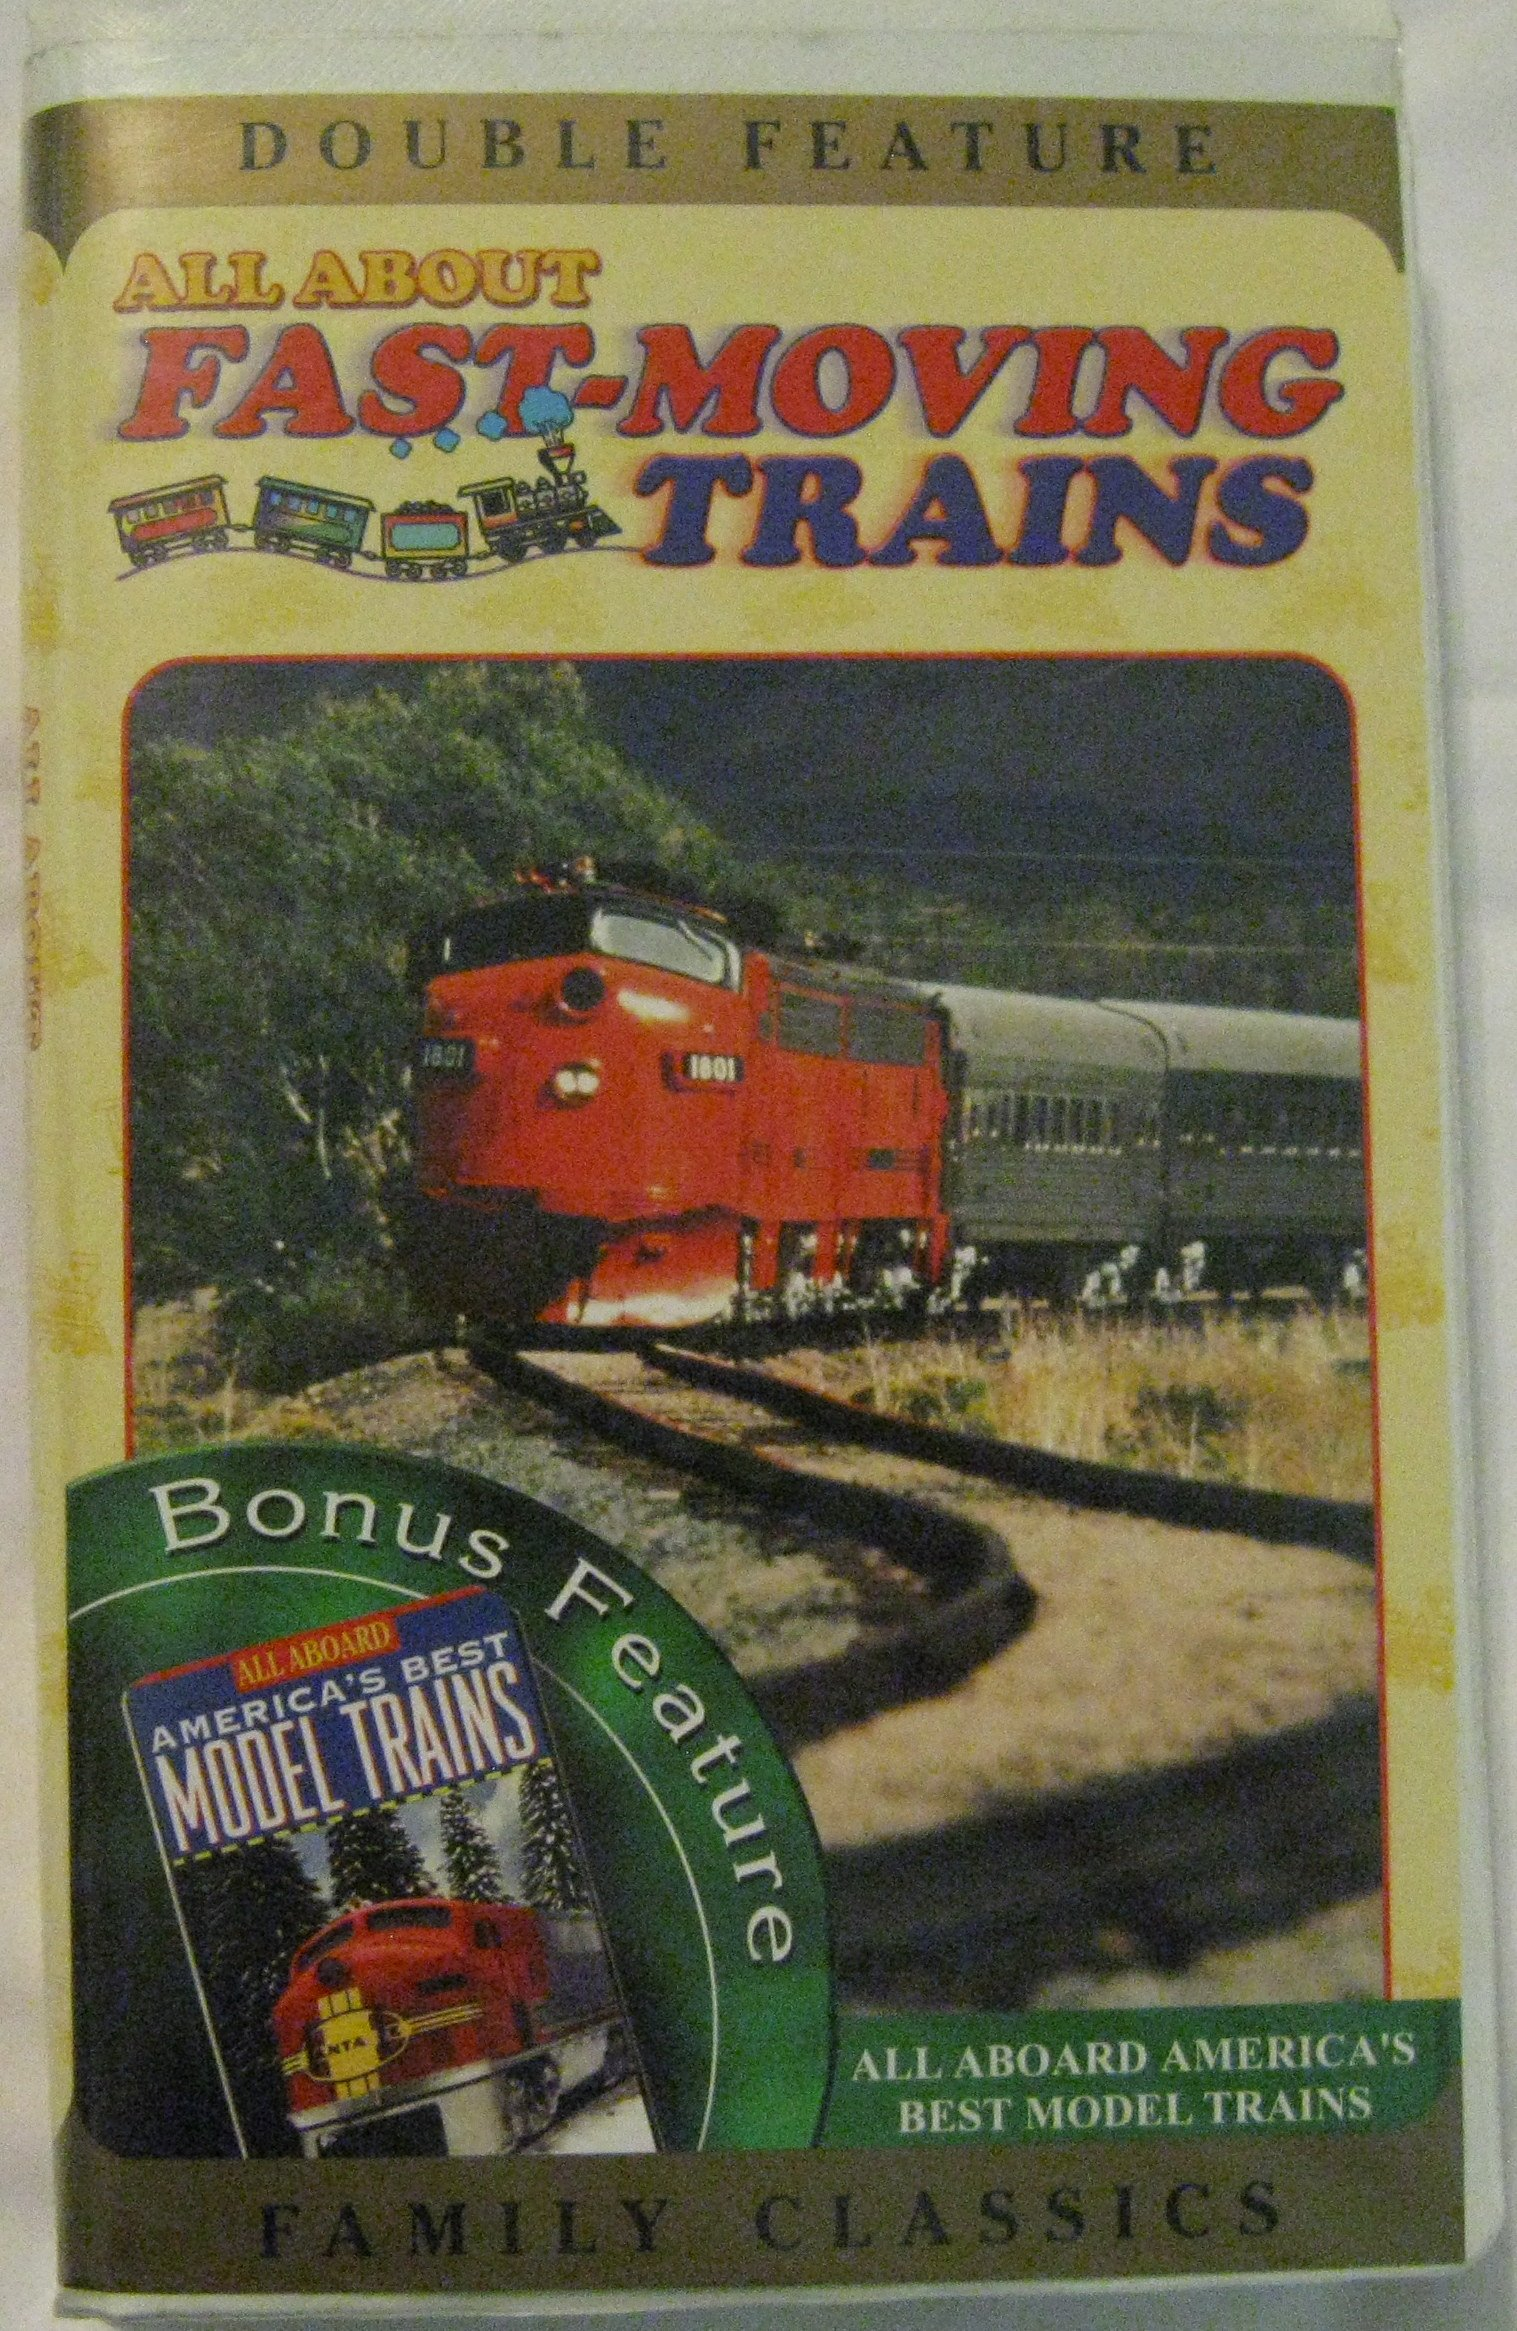 All About Fast Moving Trains & All Aboard [VHS]